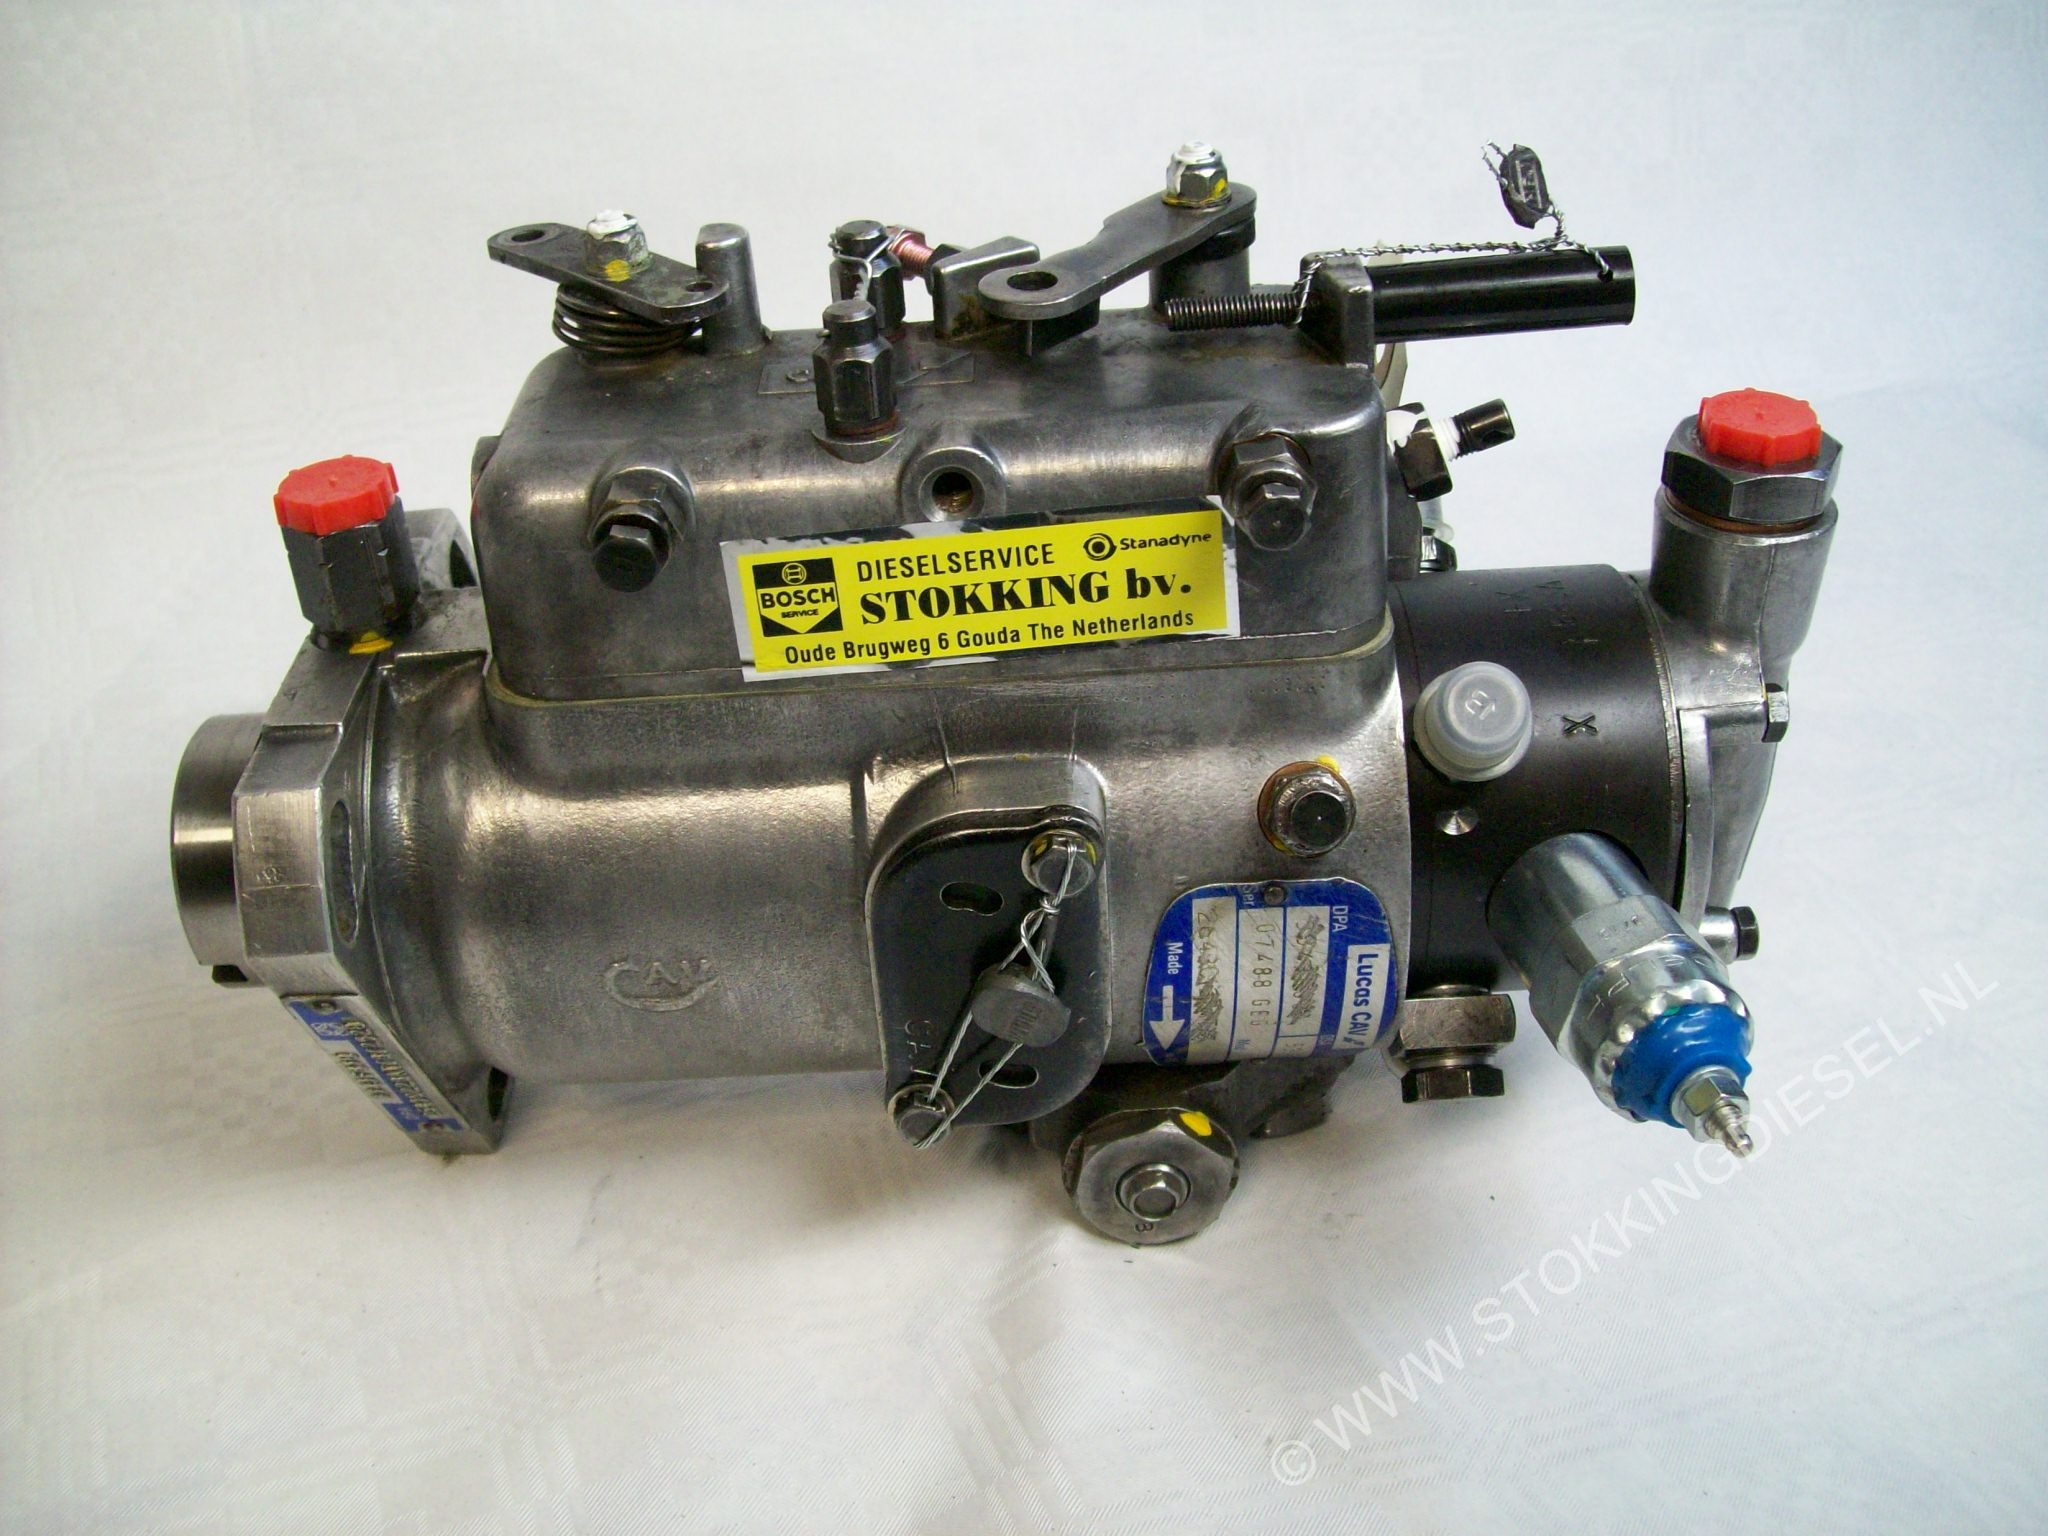 Search Results Dieselservice Stokking Bv Gespecialiseerd In De Lucas Cav Injector Pump Diagram Pictures To Pin On Pinterest